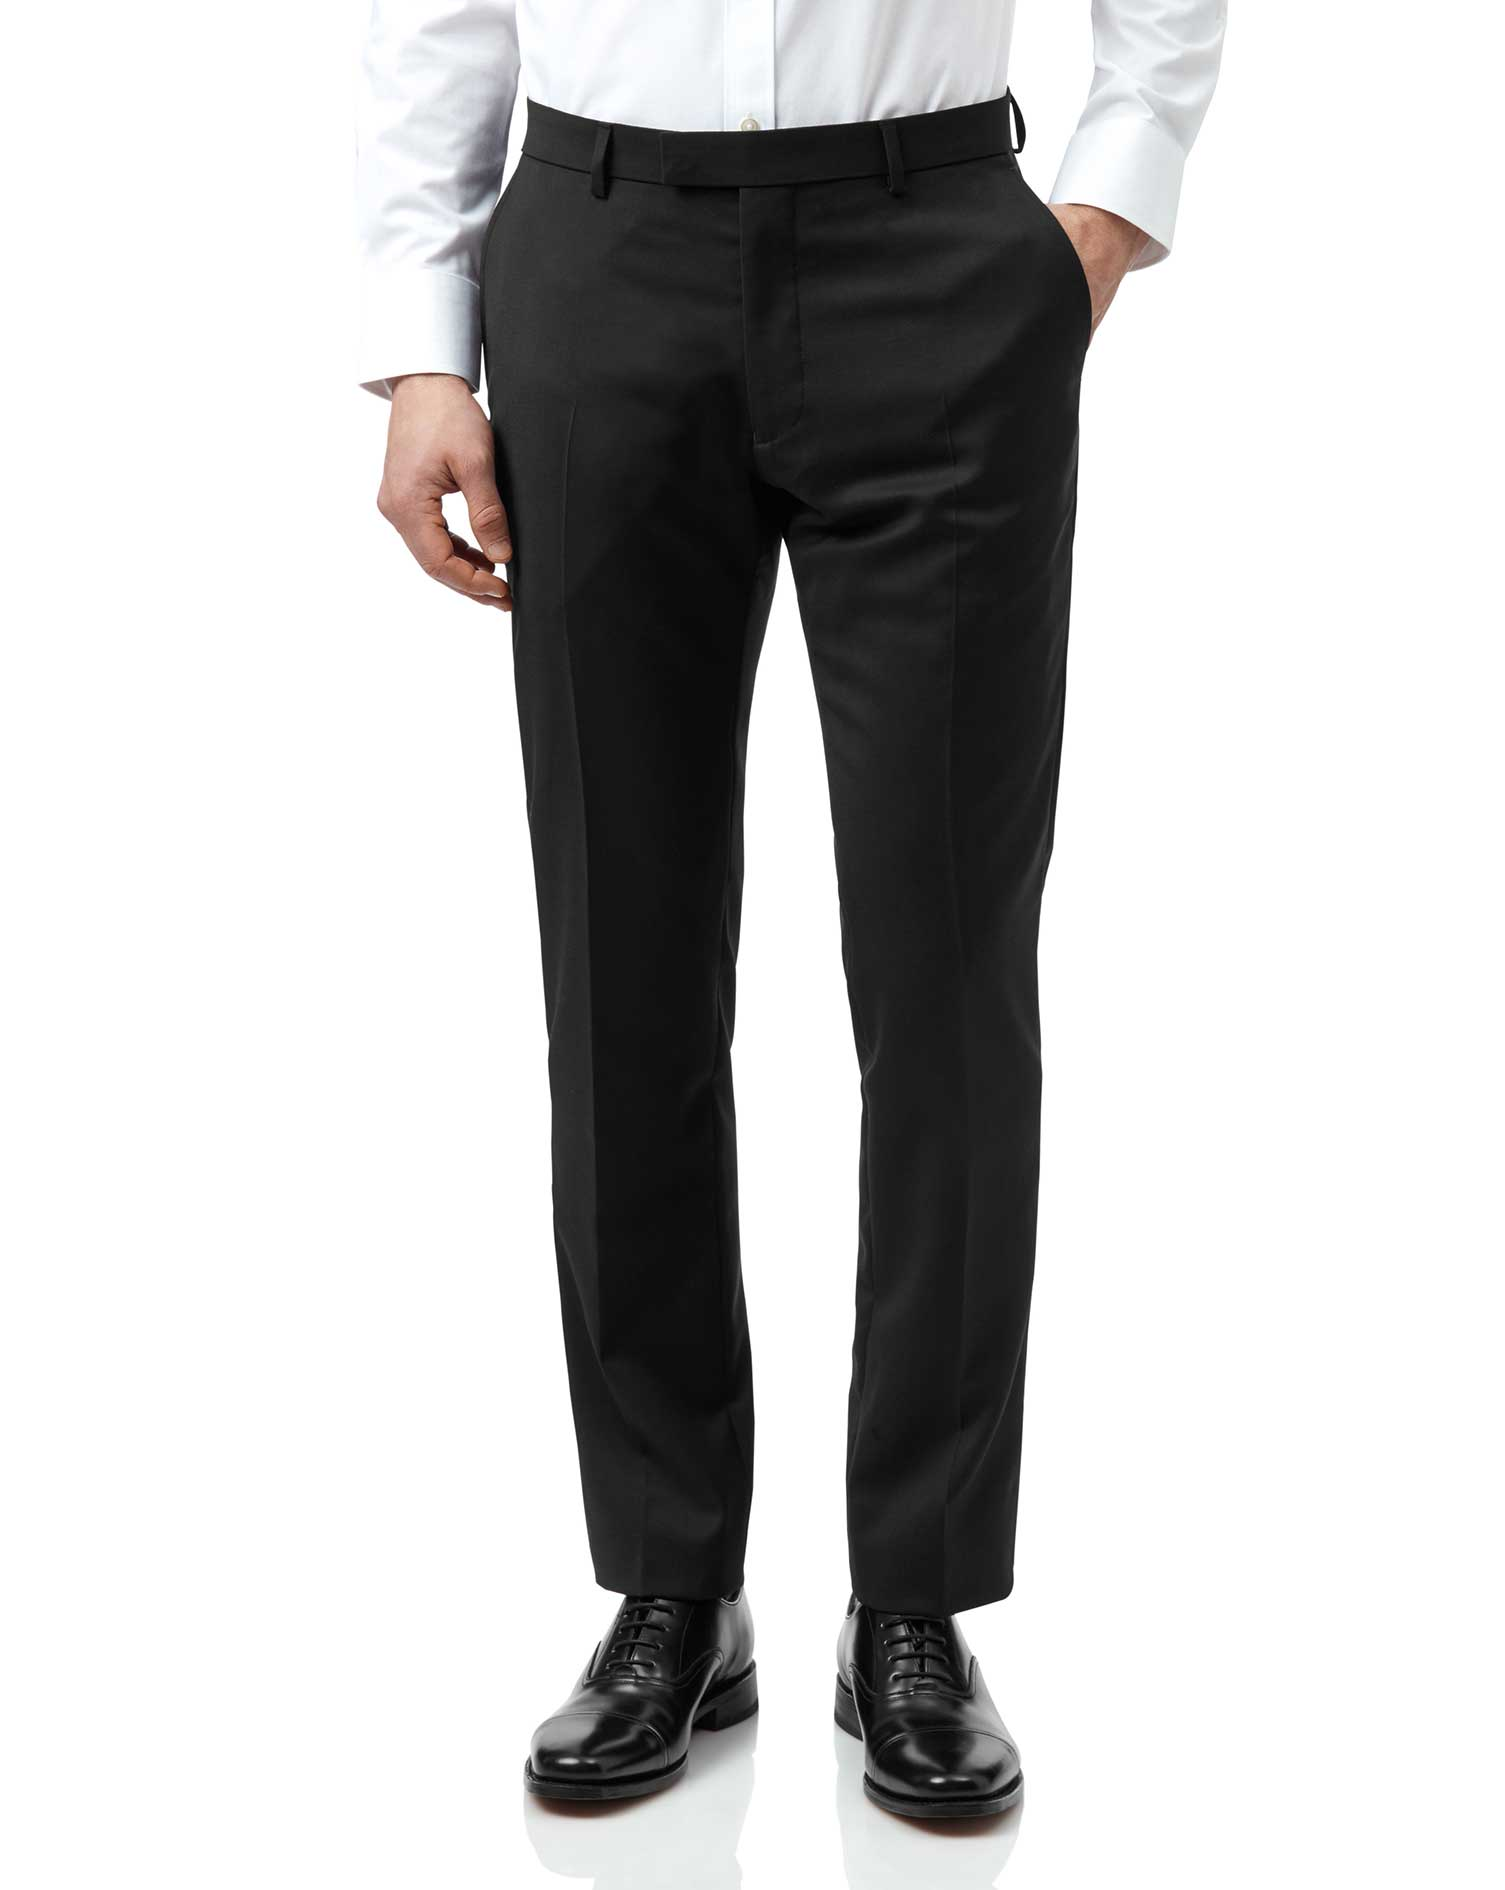 Image of Charles Tyrwhitt Black Extra Slim Fit Italian Natural Stretch Suit Trousers Size W76 L81 by Charles Tyrwhitt